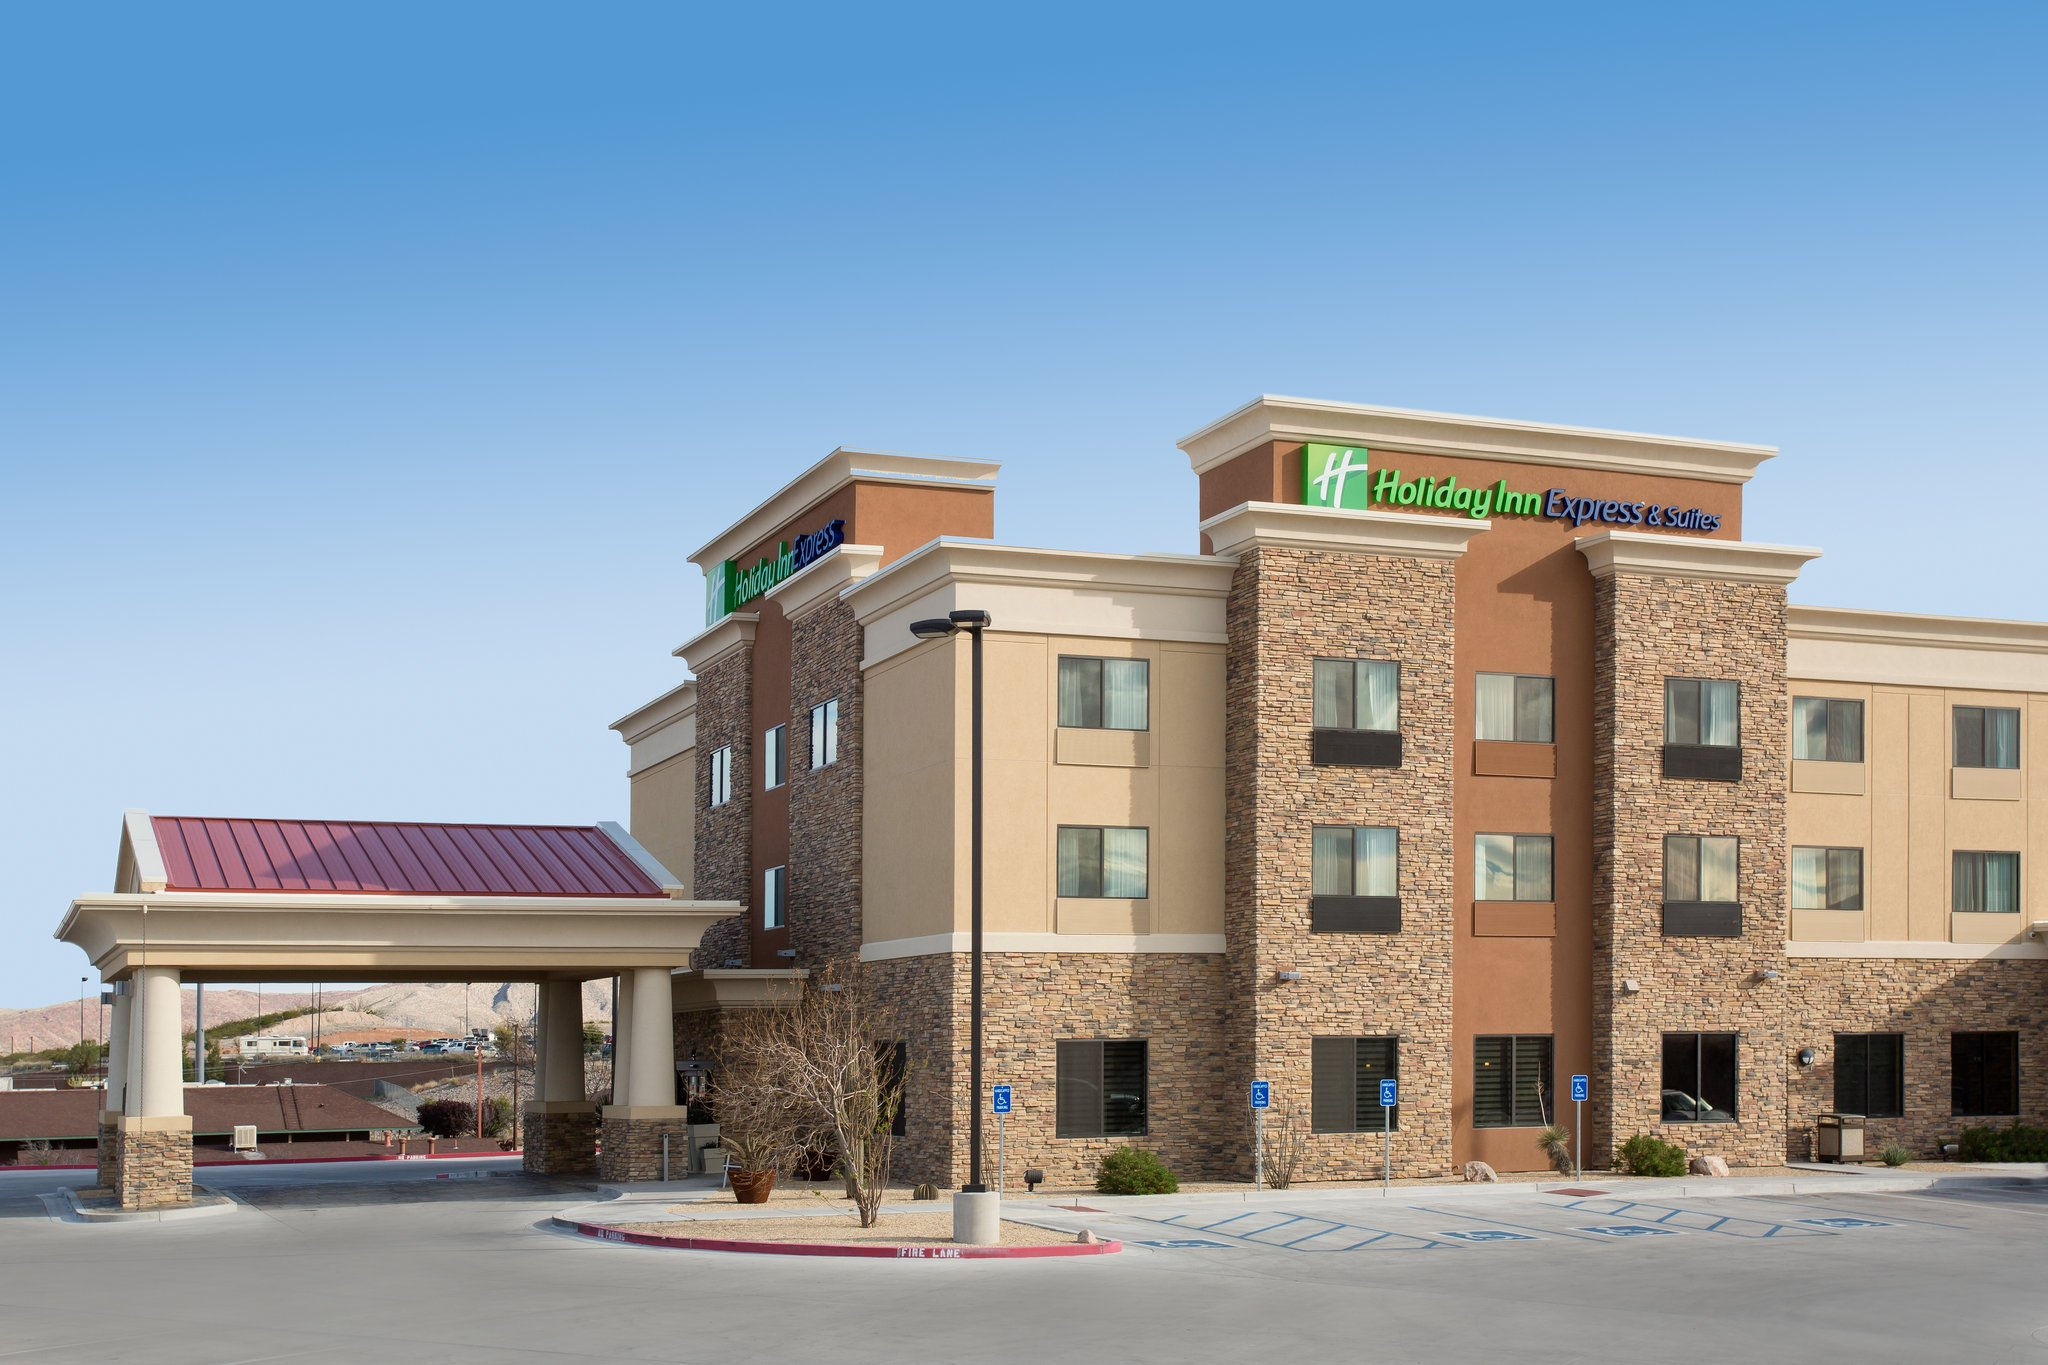 Holiday Inn Express Truth or Consequences